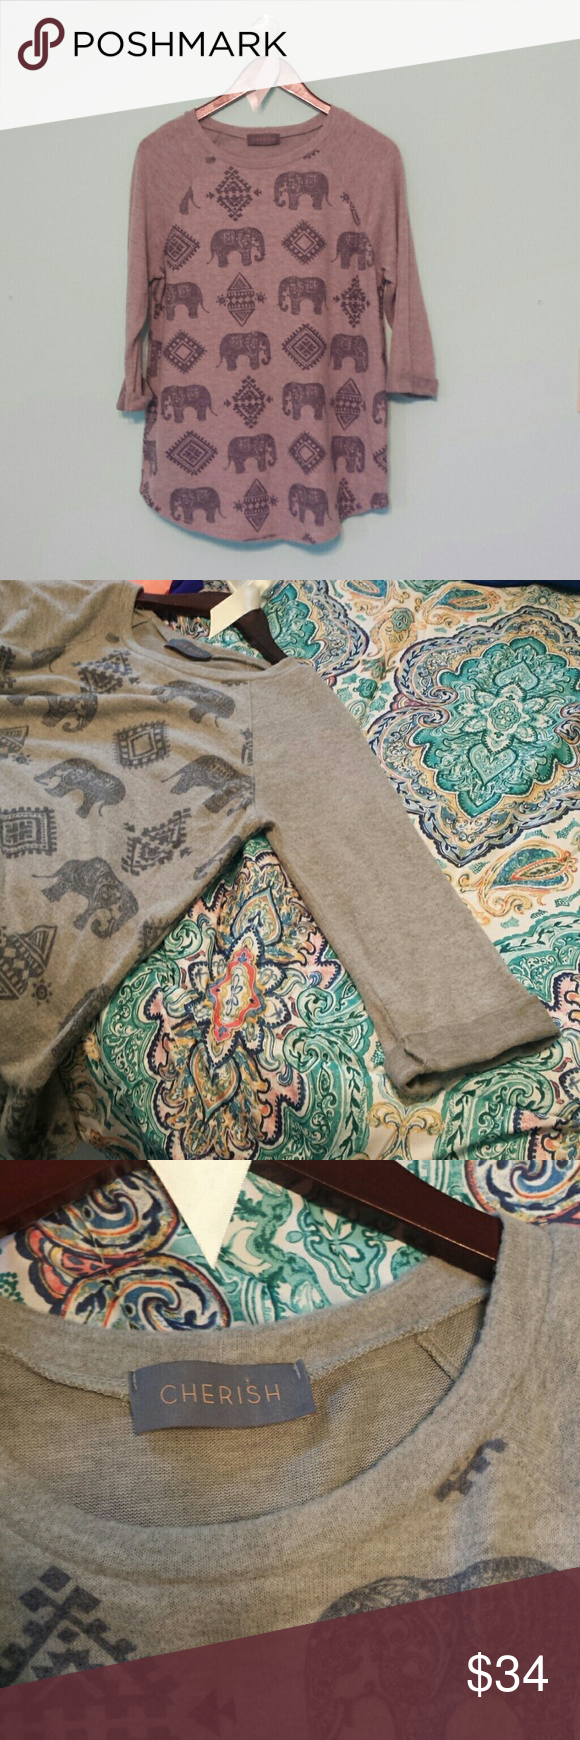 SOFT elephant sweater ONLY WORN ONCE! This sweater is  so soft and comfy! It has 3/4 sleeves and is sure to make for a great option to add to your wardrobe! Grey with Navy elephants Cherish Sweaters Crew & Scoop Necks